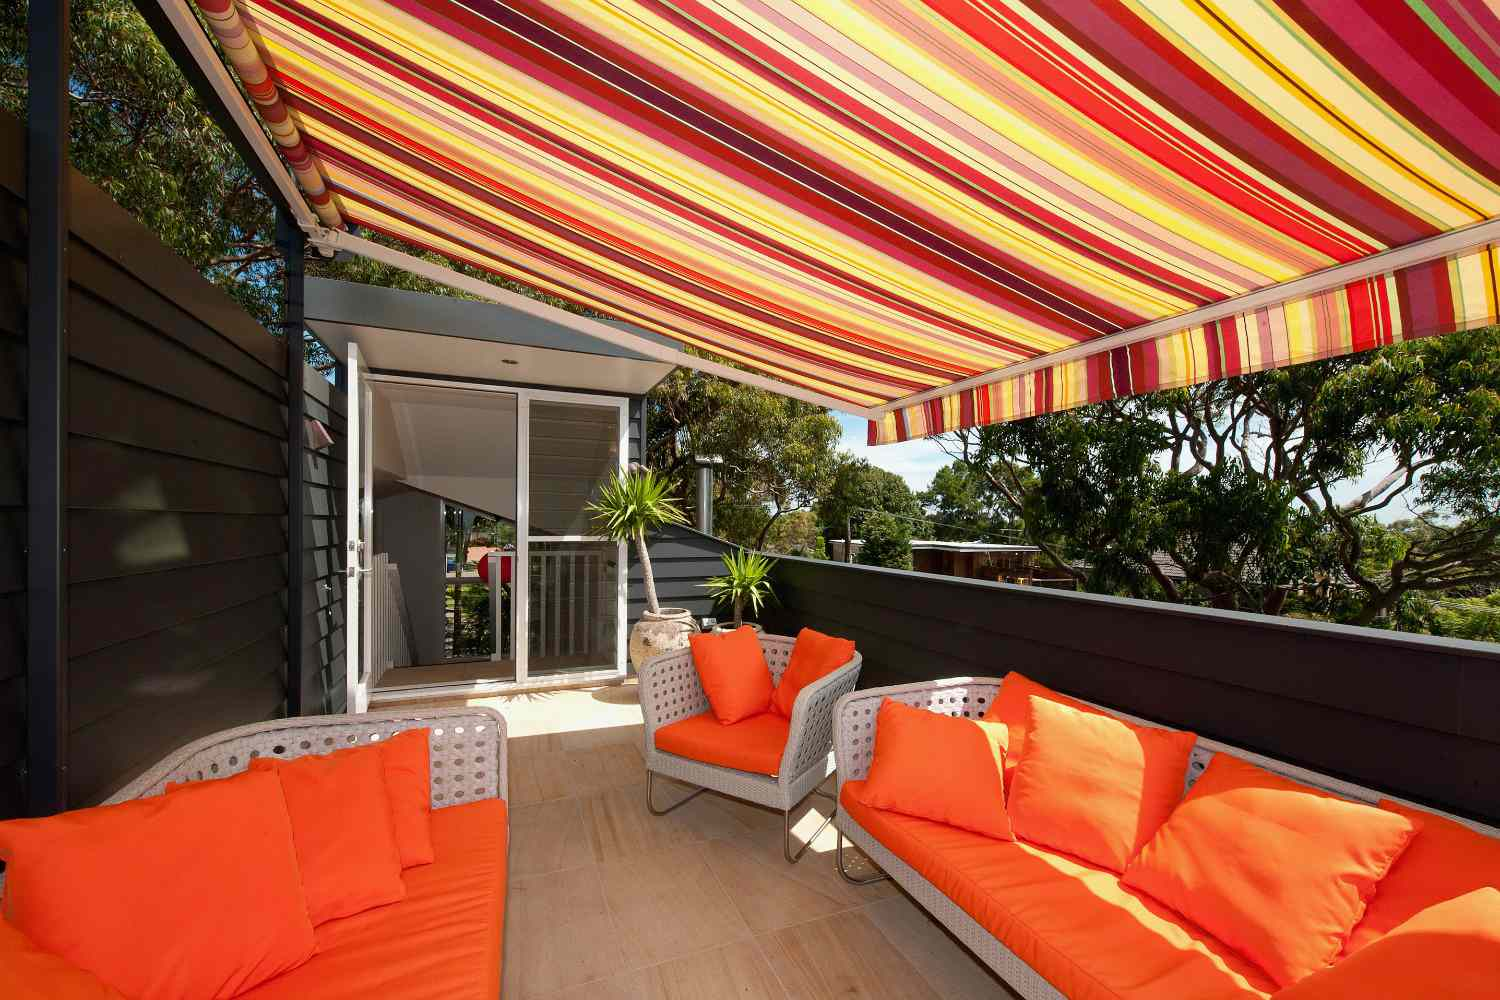 colorful awning